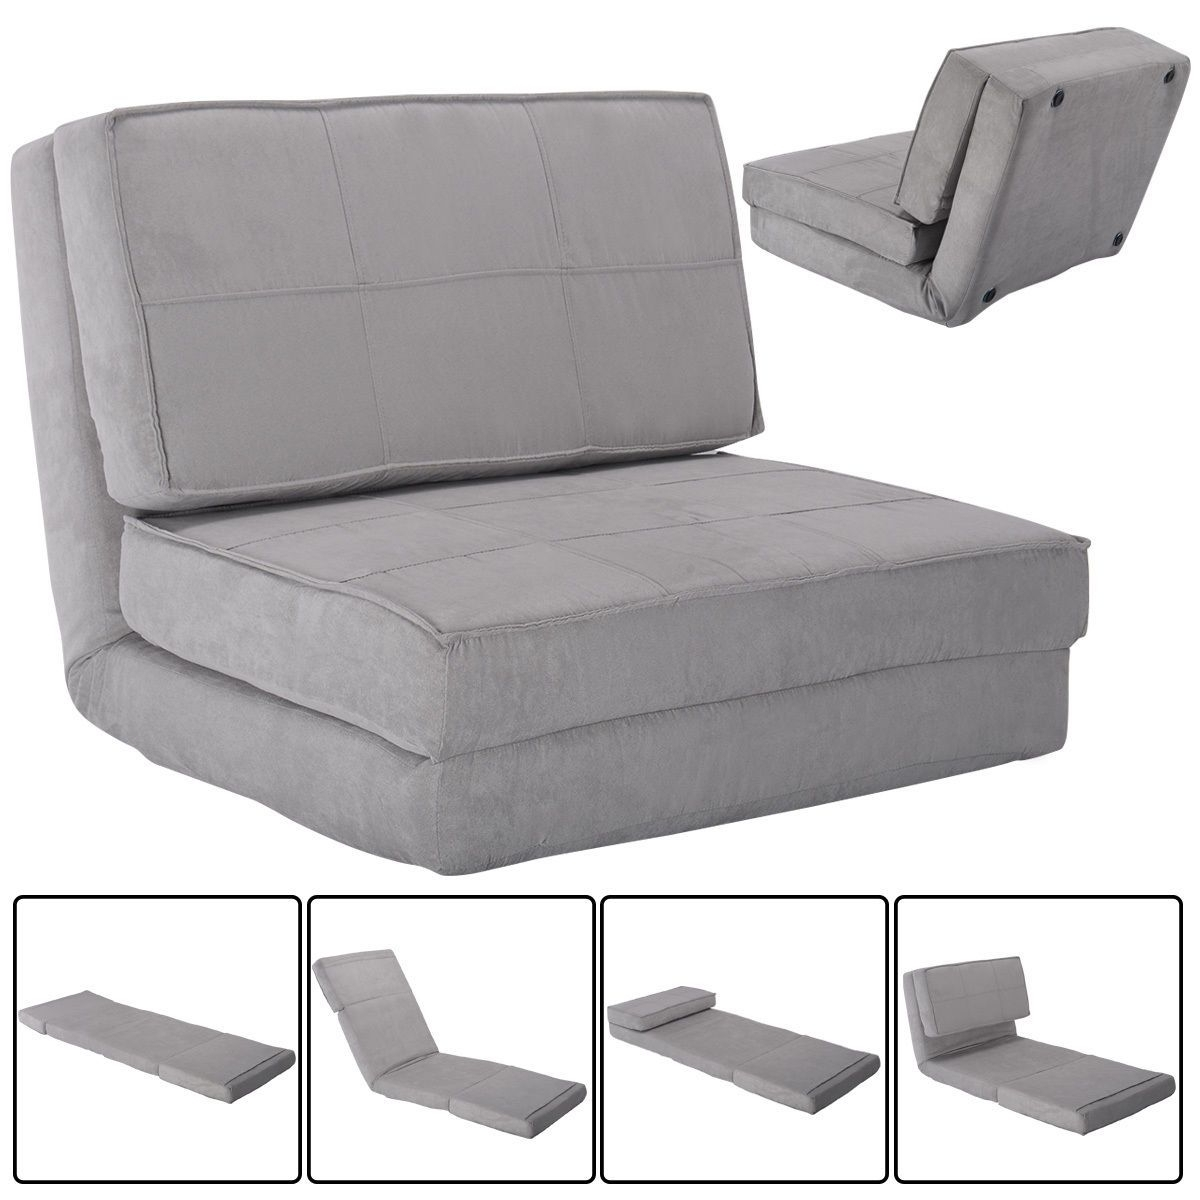 Famous Folding Sofa Chairs Intended For Convertible Lounger Folding Sofa Sleeper Bed (View 8 of 20)